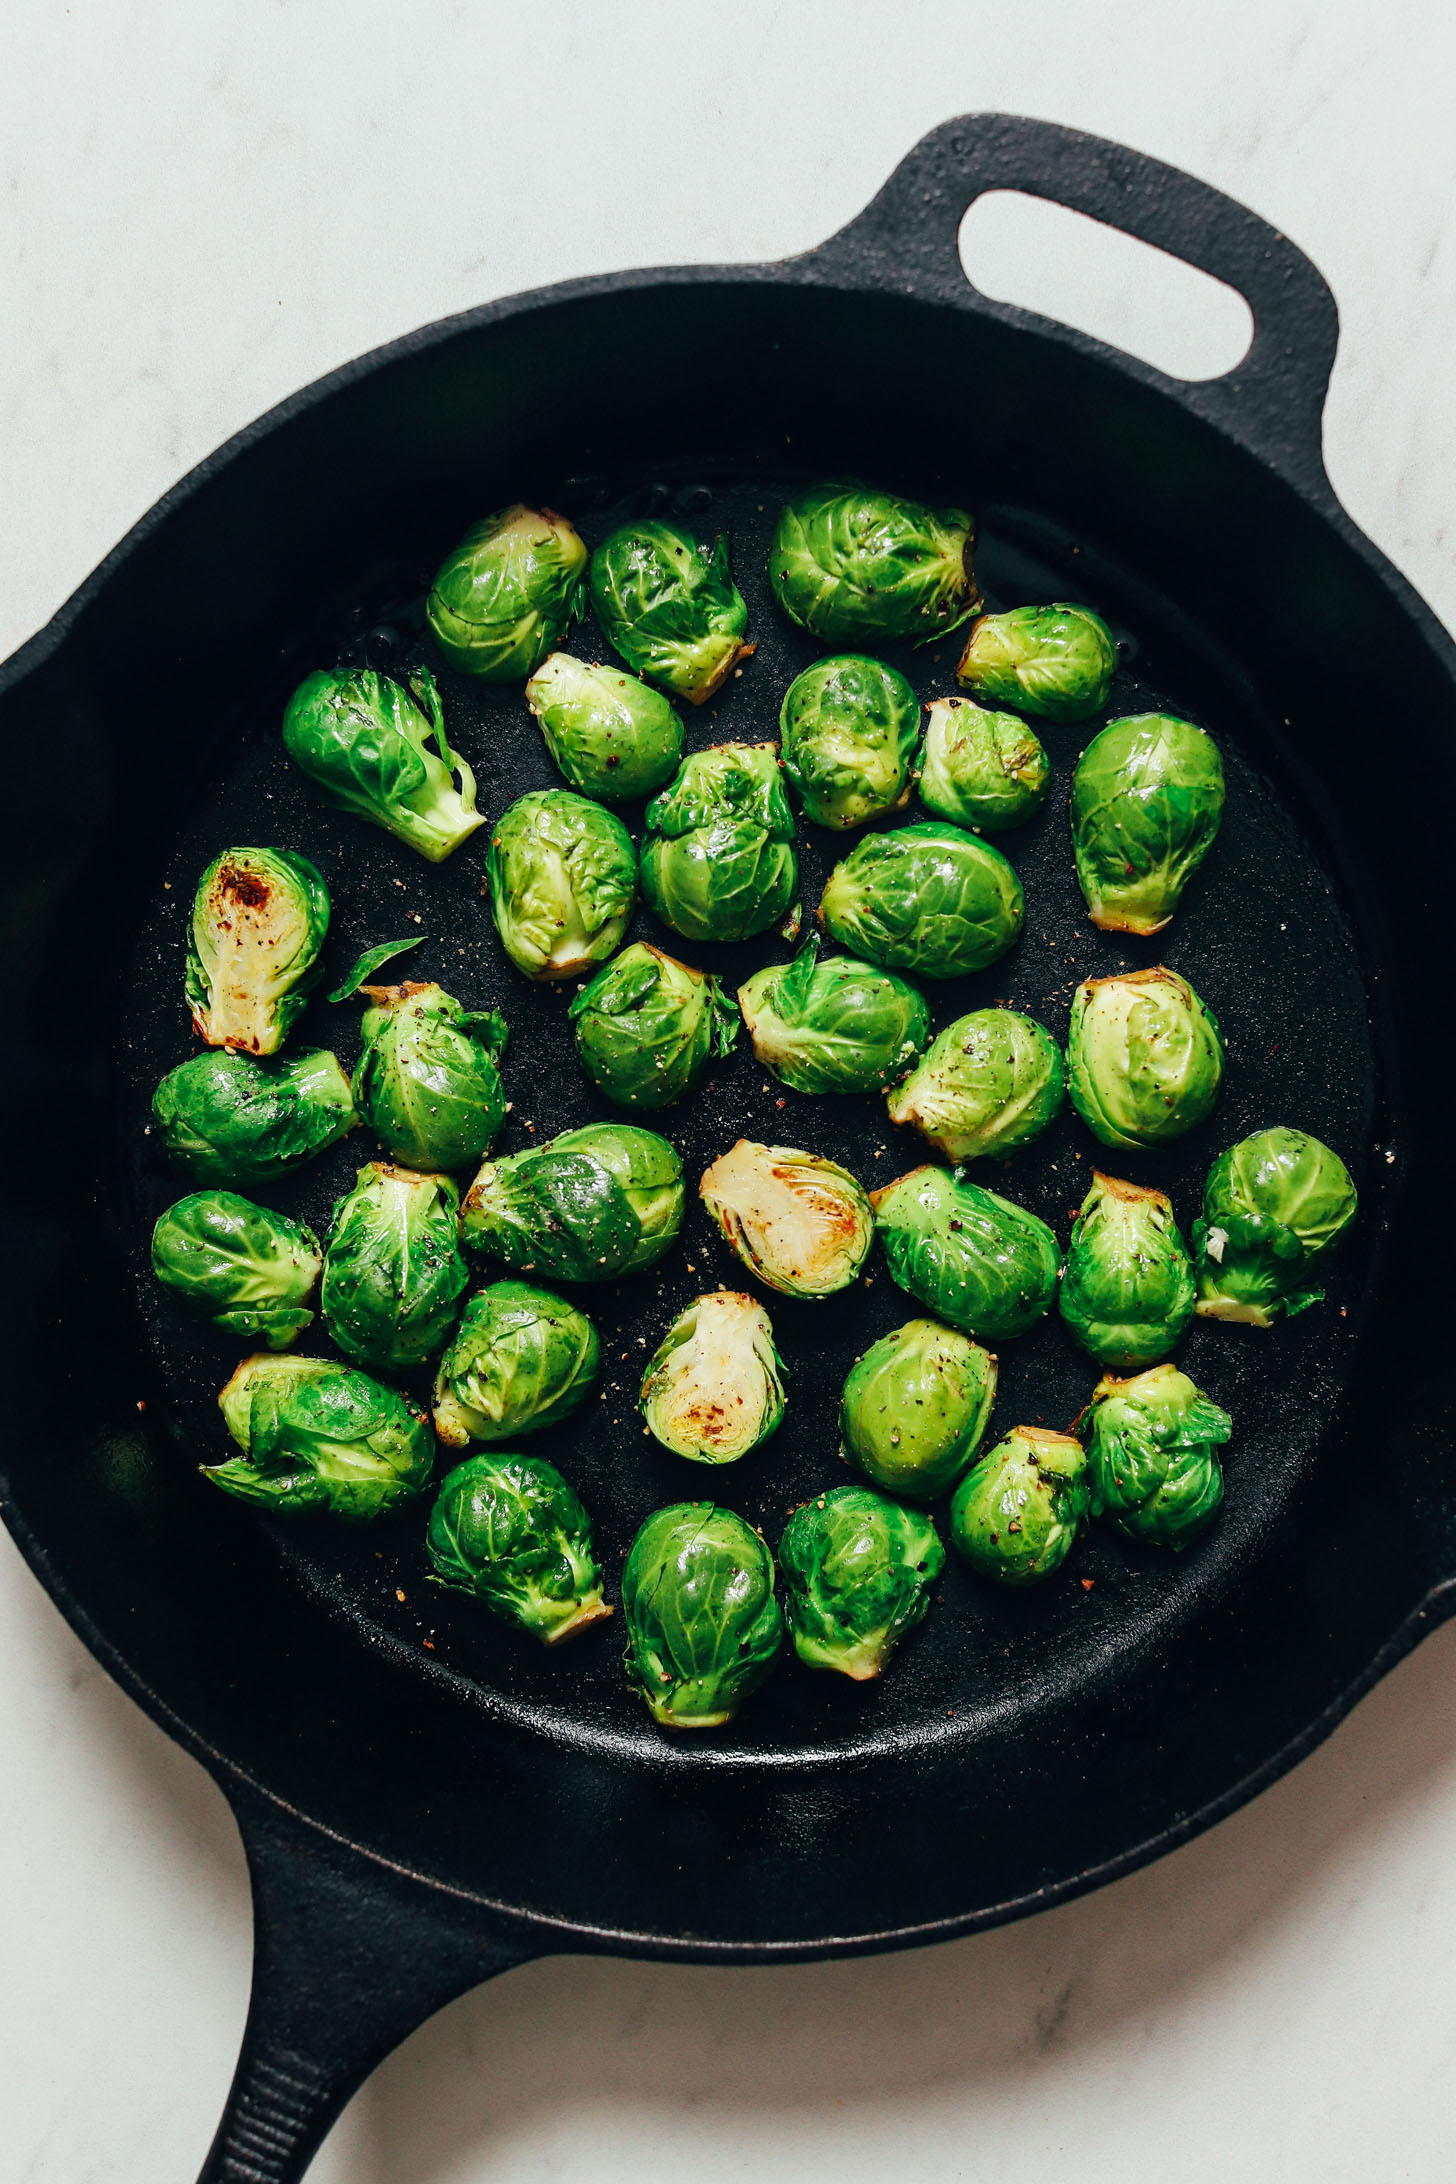 Cooking Brussels sprouts in a cast iron skillet